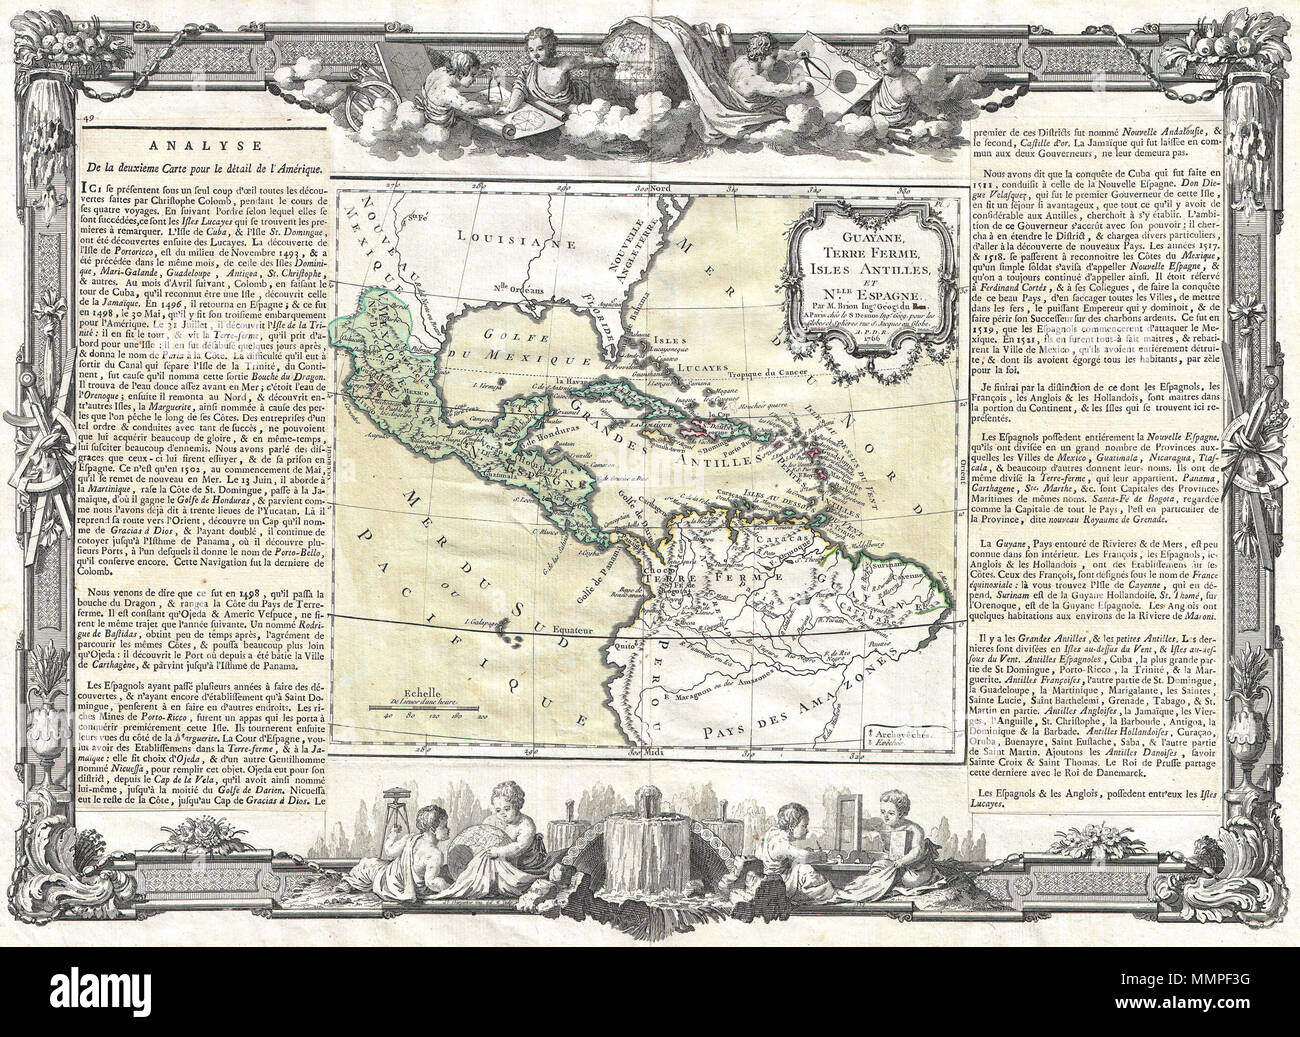 .  English: A stunning decorative 1766 map of Mexico, Central America and the West Indies by Louis Brion de la Tour. Covers from the Chesapeake Bay south to Peru and the Amazon but focuses on Mexico and the Caribbean region. Decorative baroque style title cartouche in the upper right quadrant of the map proper. Flanked on either side by a textual description of the region in French. Surrounded by a magnificent baroque border featuring cherubs engaged in the study of geography and mapmaking. Prepared by Louis Brion de la Tour and published by S.  Guayane, Terre Ferme, Isles Antilles, et Nlle. E - Stock Image